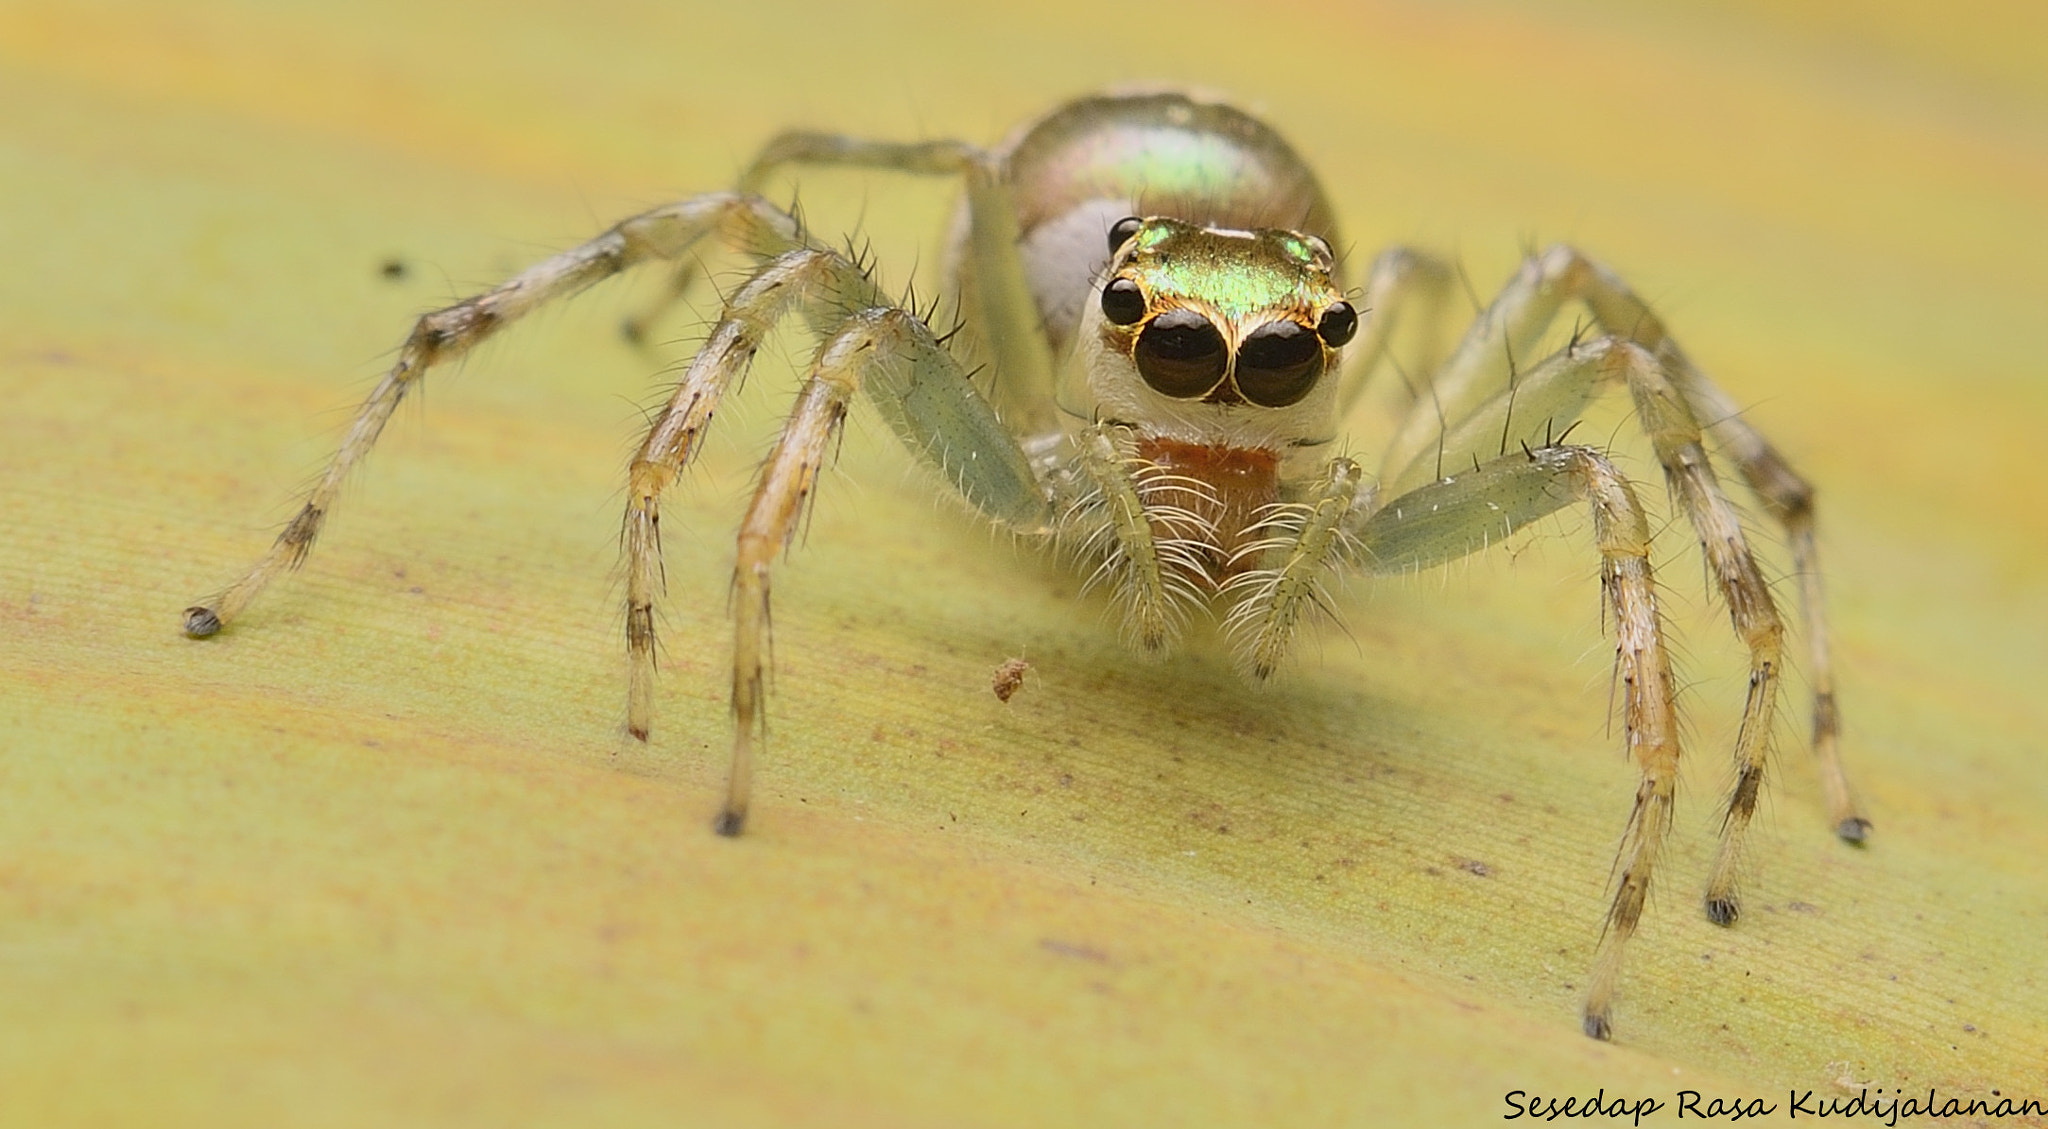 Photograph Jumper Spider by Sesedap Rasa Kudijalanan on 500px